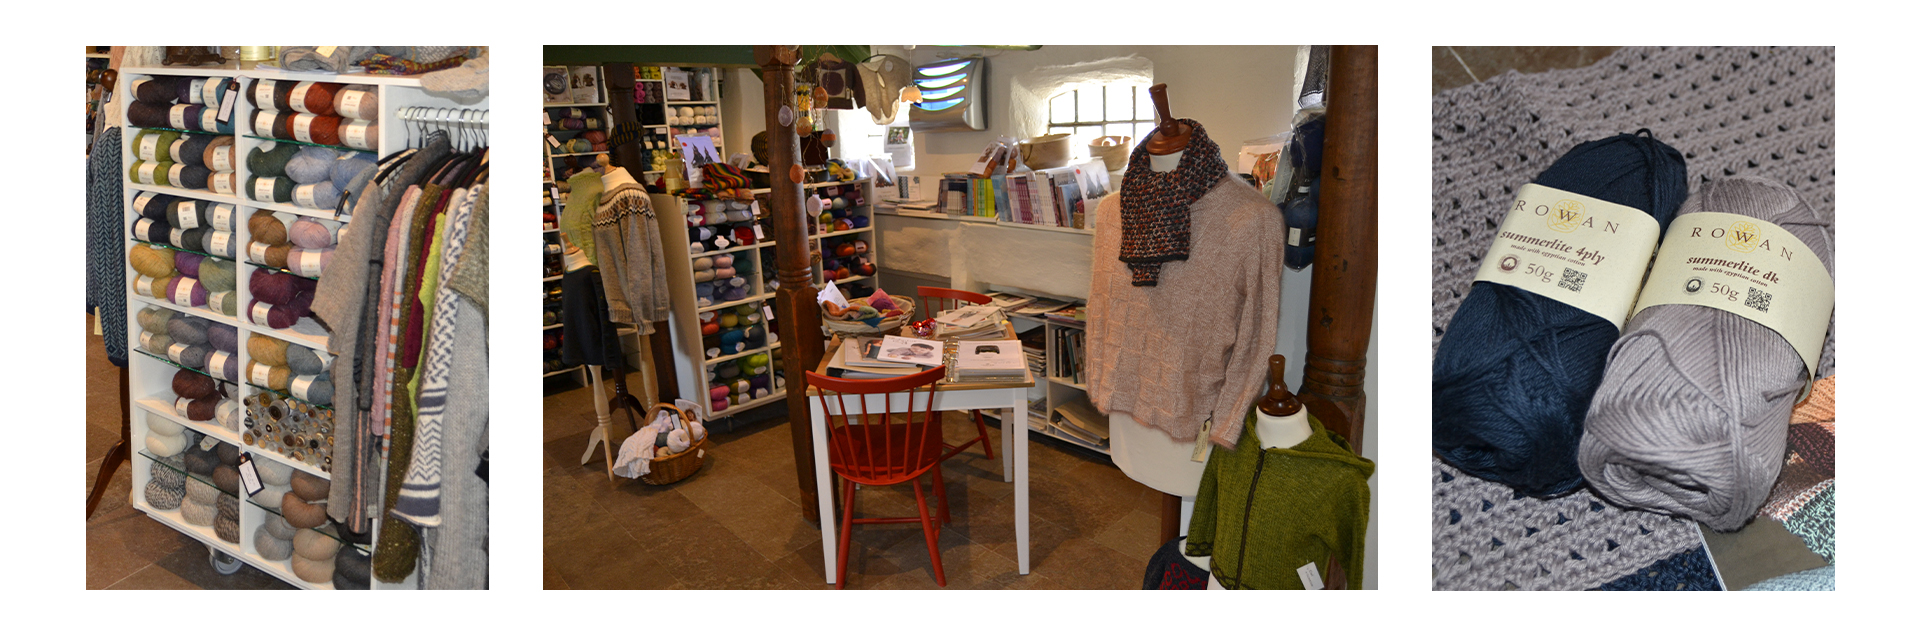 Ho Strik is a small yarn store in the countryside, with a cosy atmosphere where you can buy high quality yarns. The old thatched farmhouse is a provides a perfectly calm setting for you to choose your next knitting project.